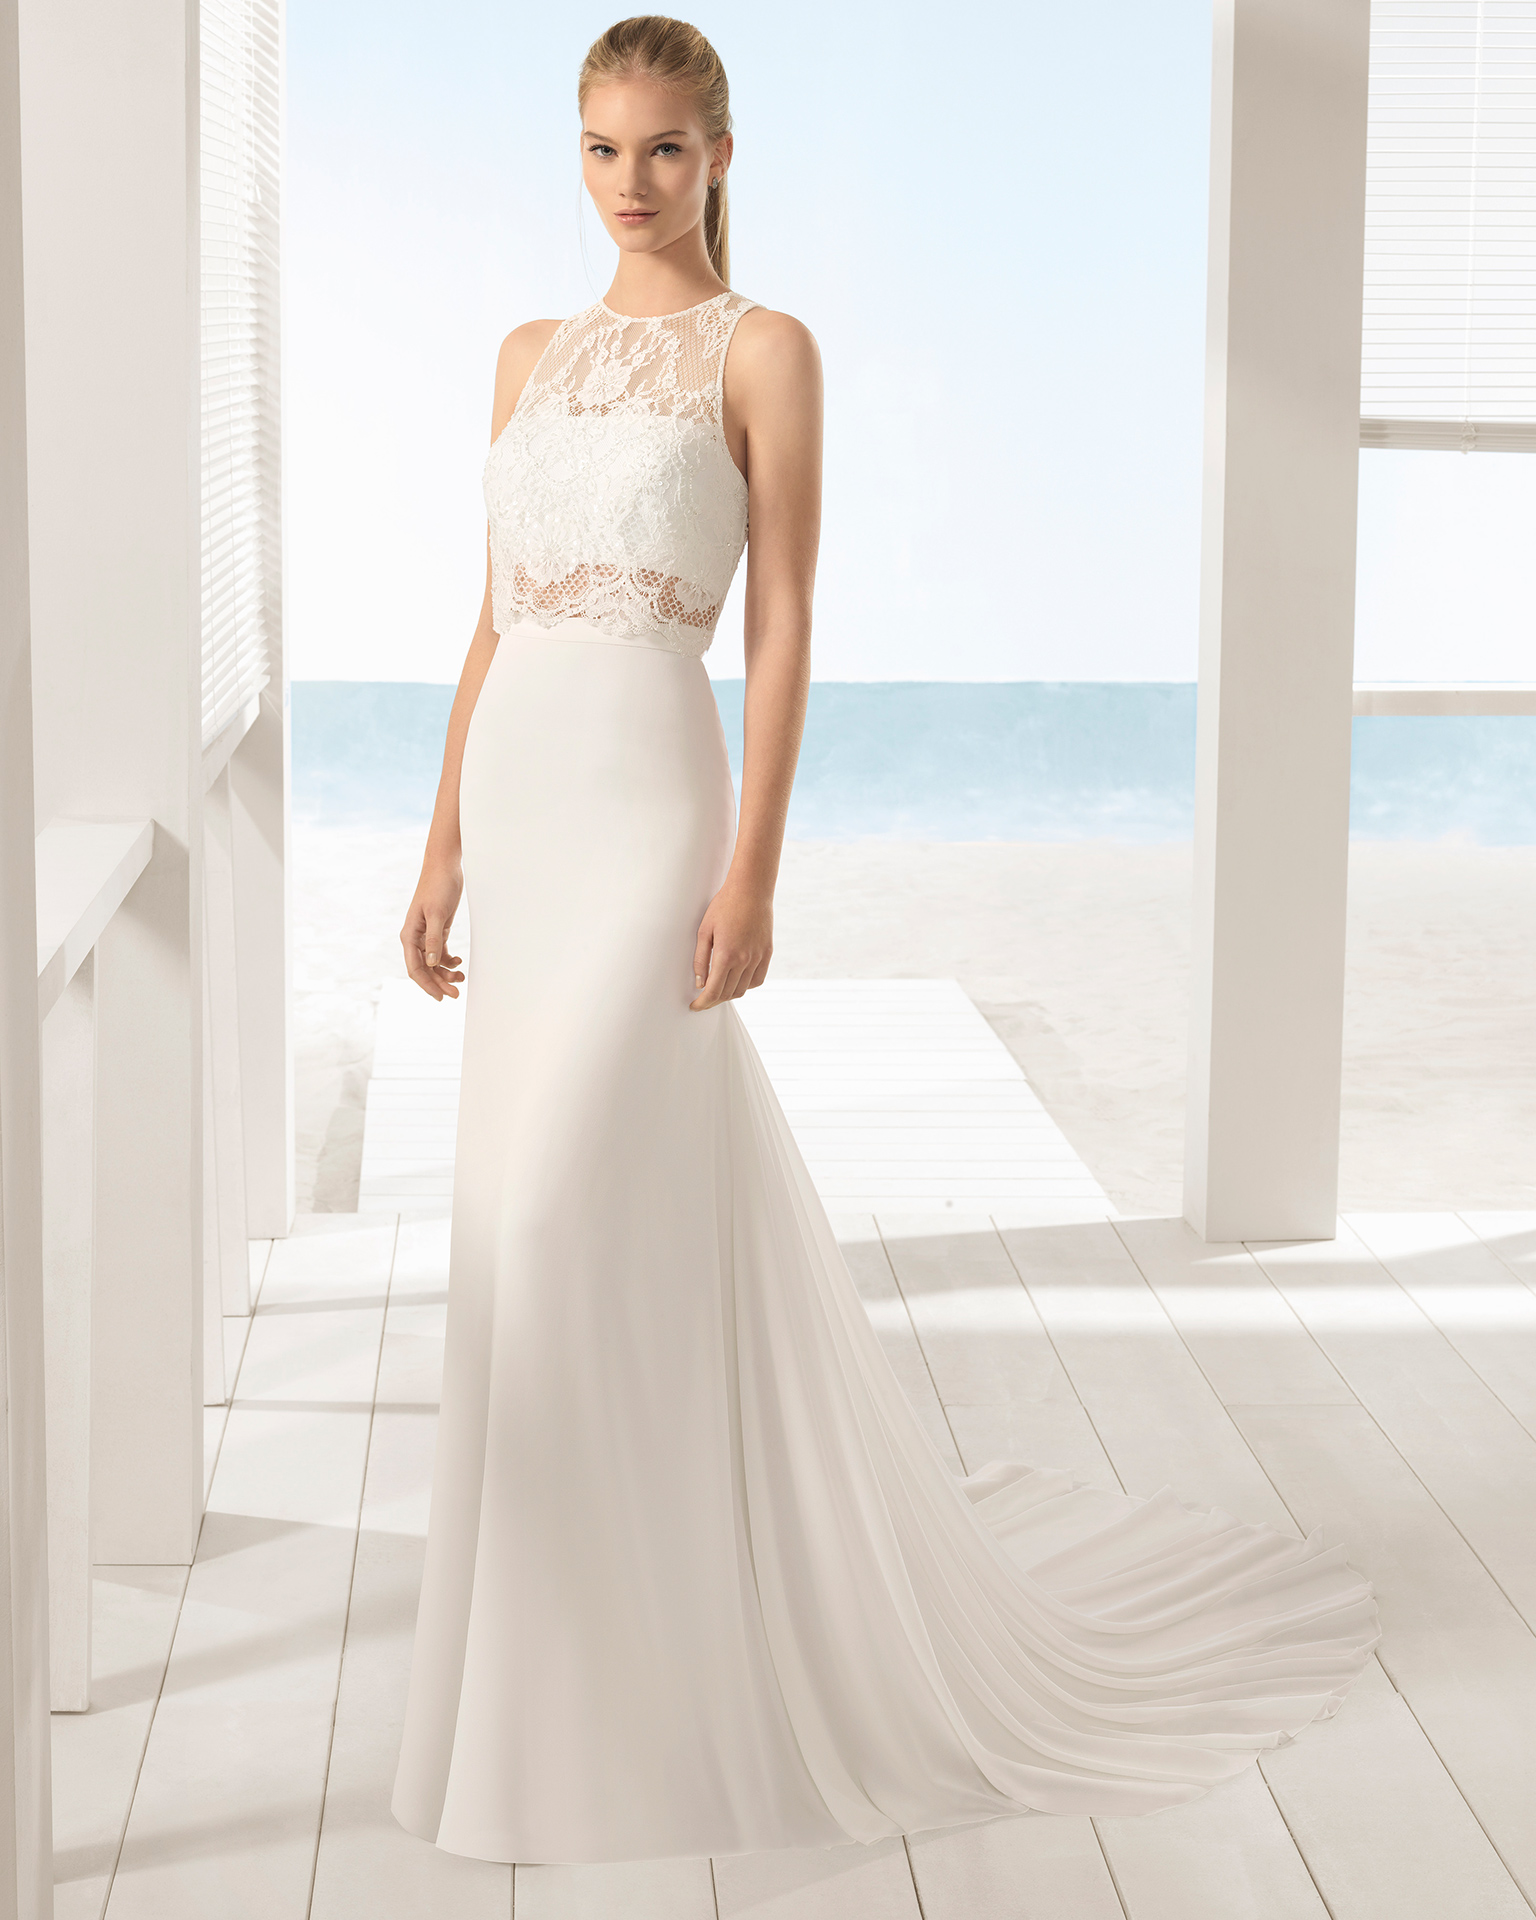 Boho-style beaded lace and crepe Georgette three-piece wedding dress with halter neckline and jacket.